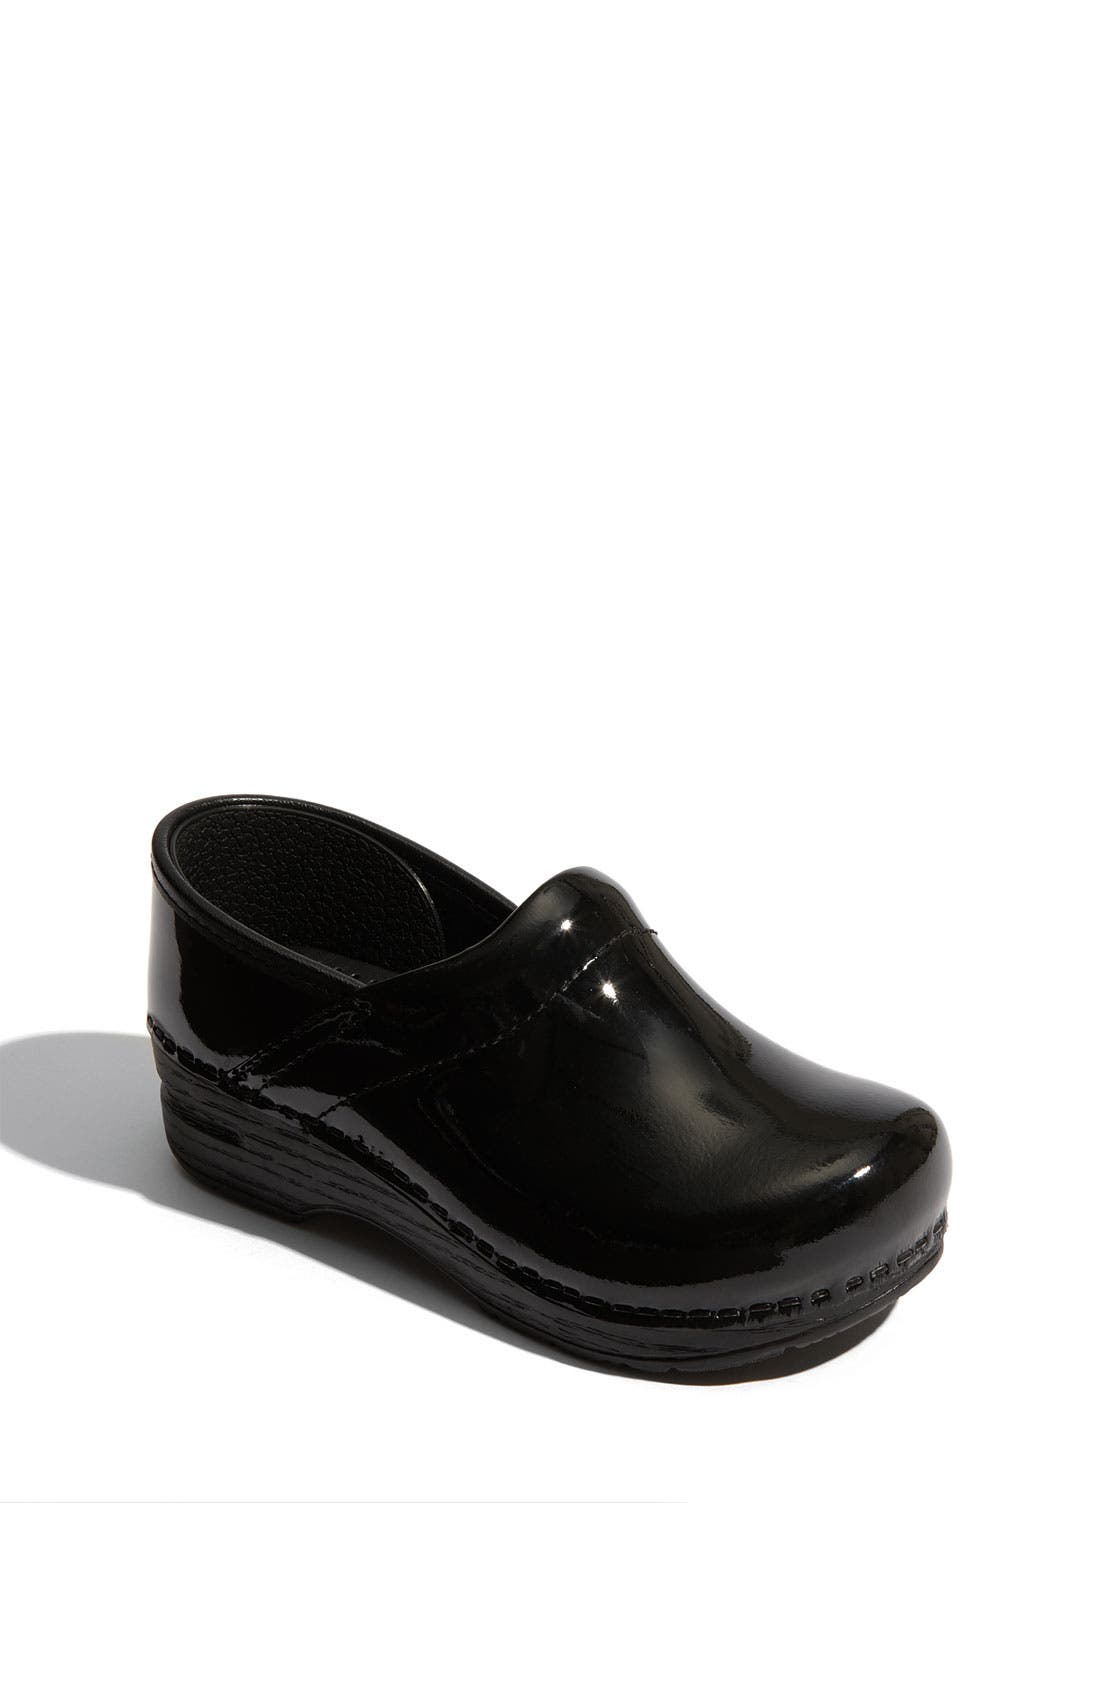 Main Image - Dansko 'Gitte' Clog (Toddler, Little Kid & Big Kid)